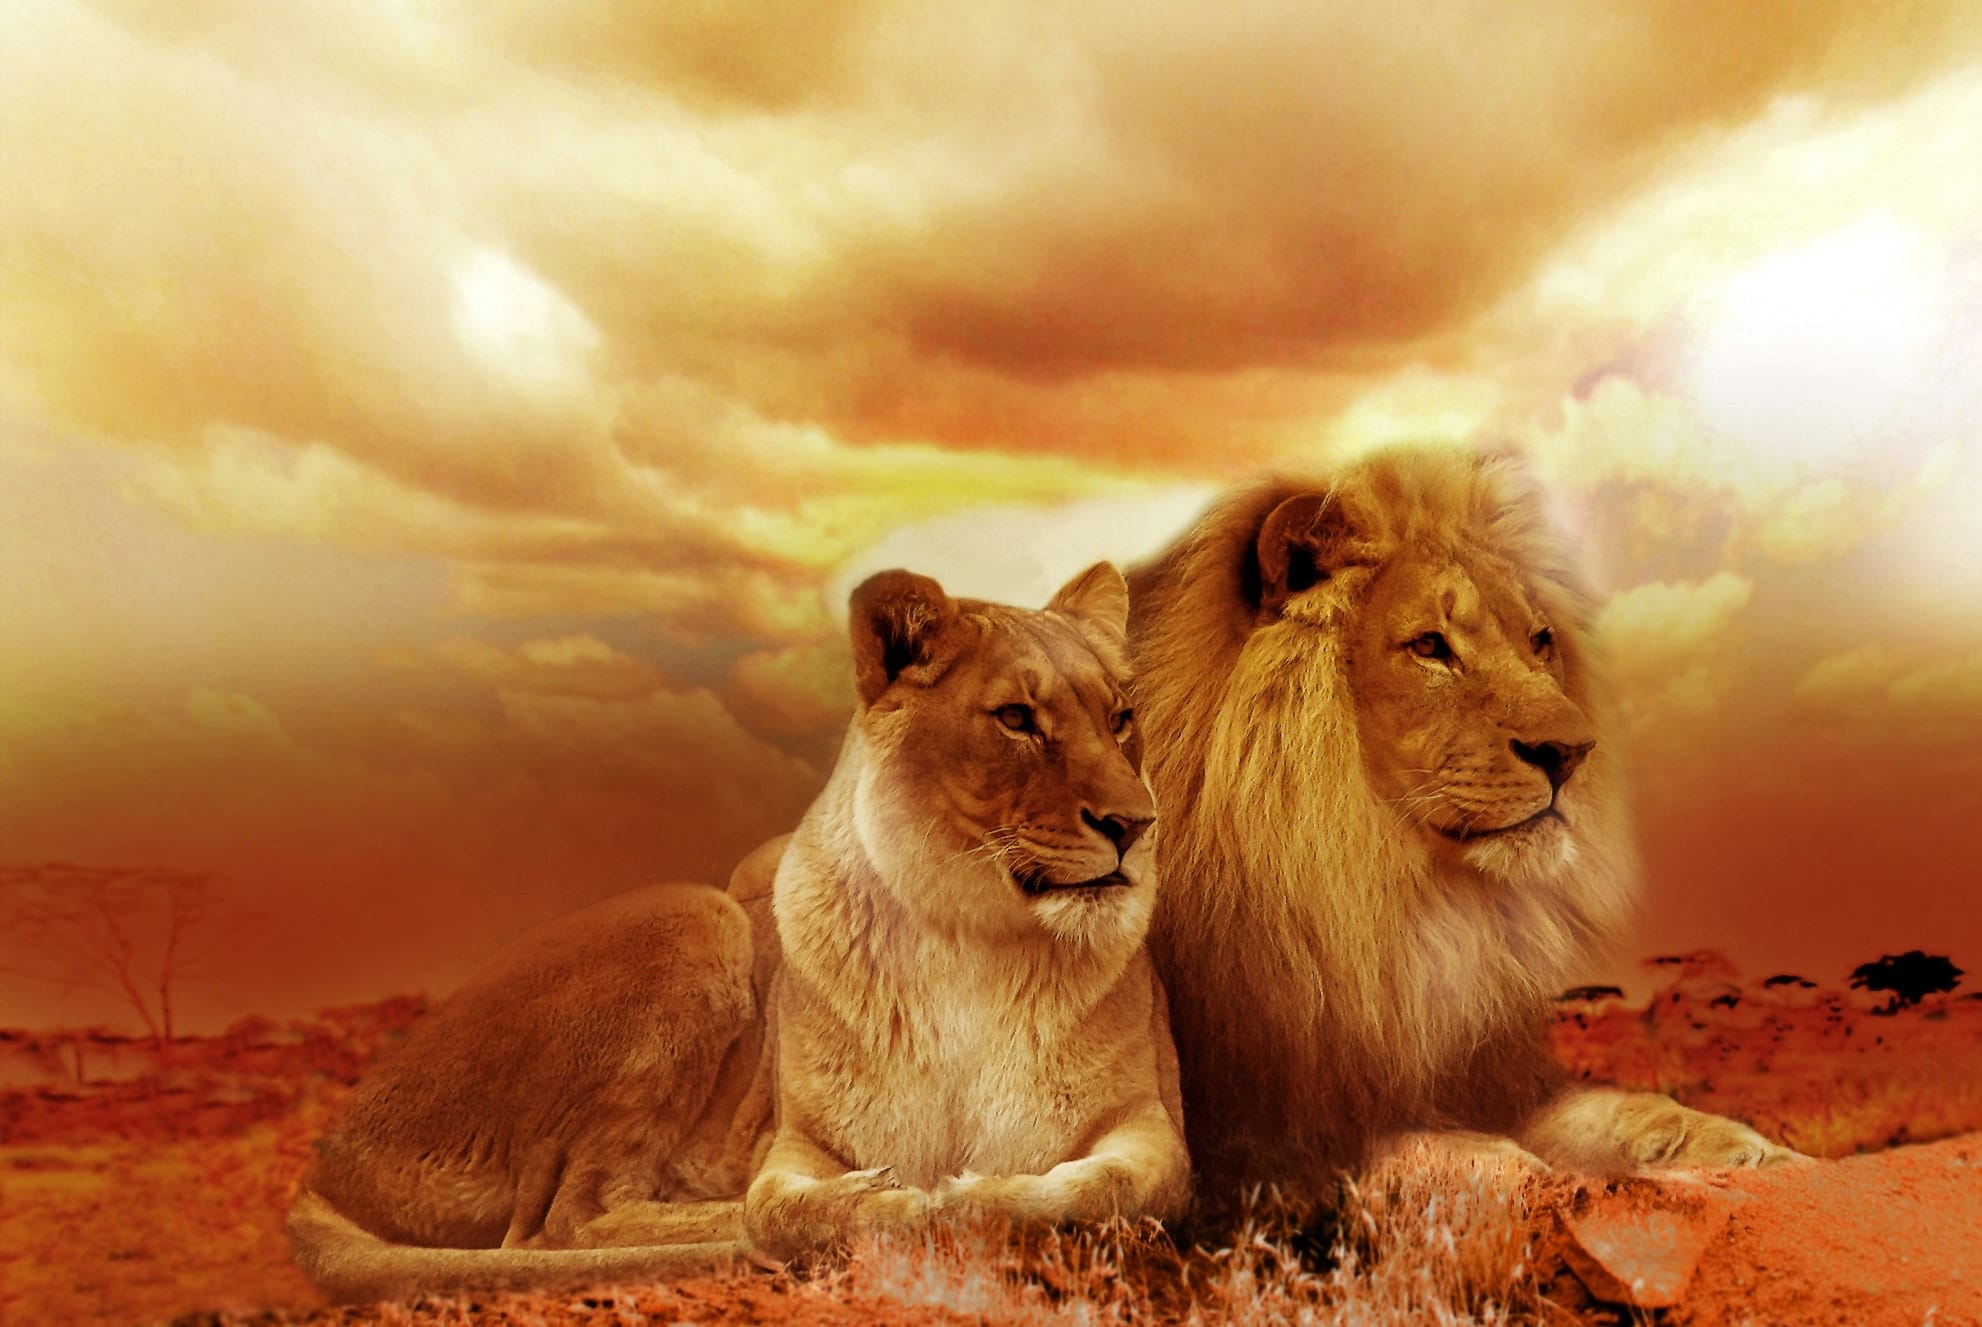 Lion and lioness seated together